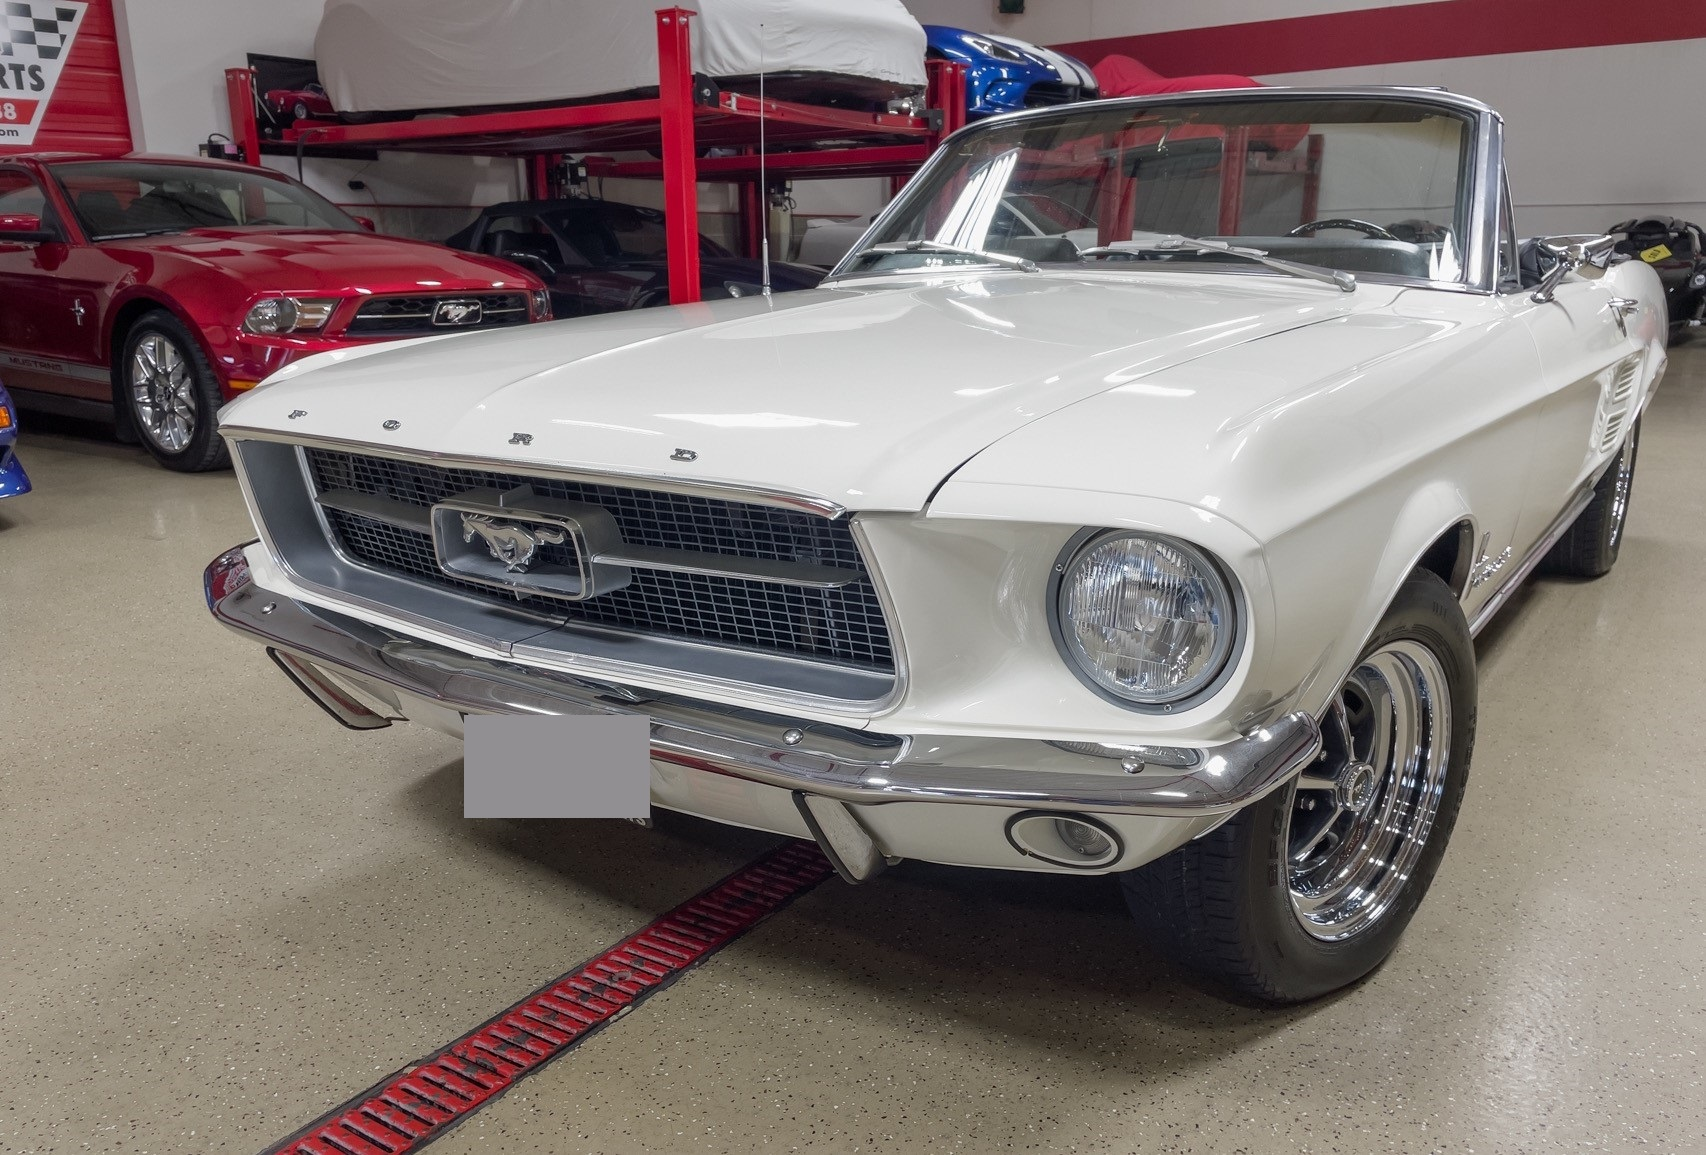 Ford-Mustang-cabriolet-1967-a20